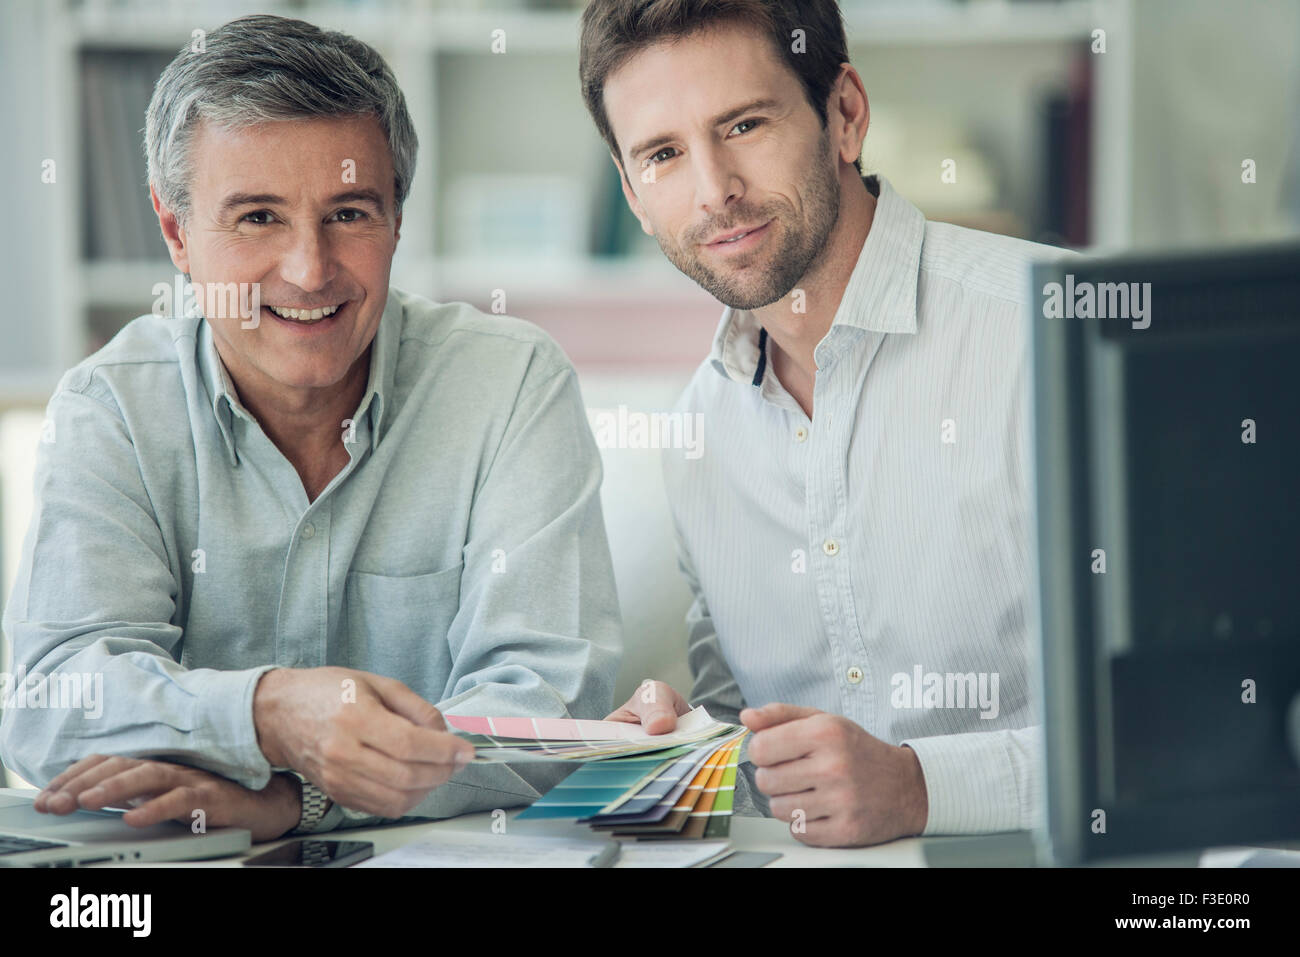 Businessmen discussing color swatches, portrait - Stock Image